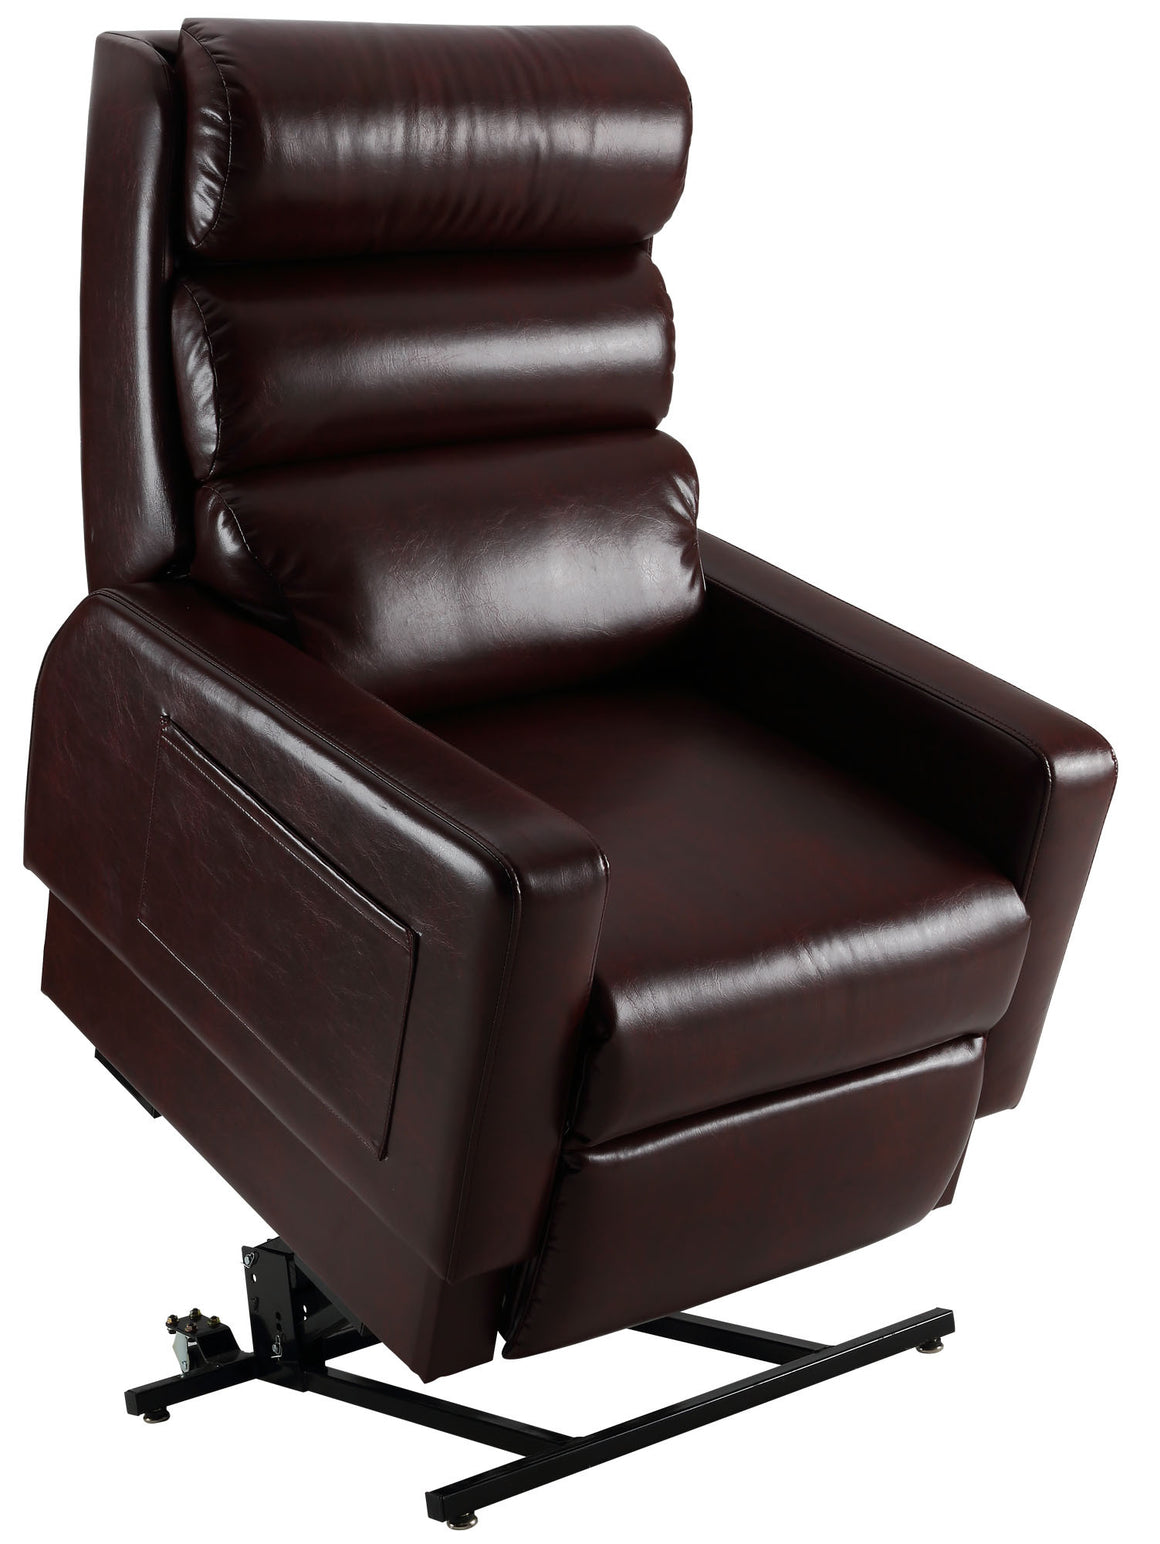 Cozzia MC520 Mobility Chair cranberry